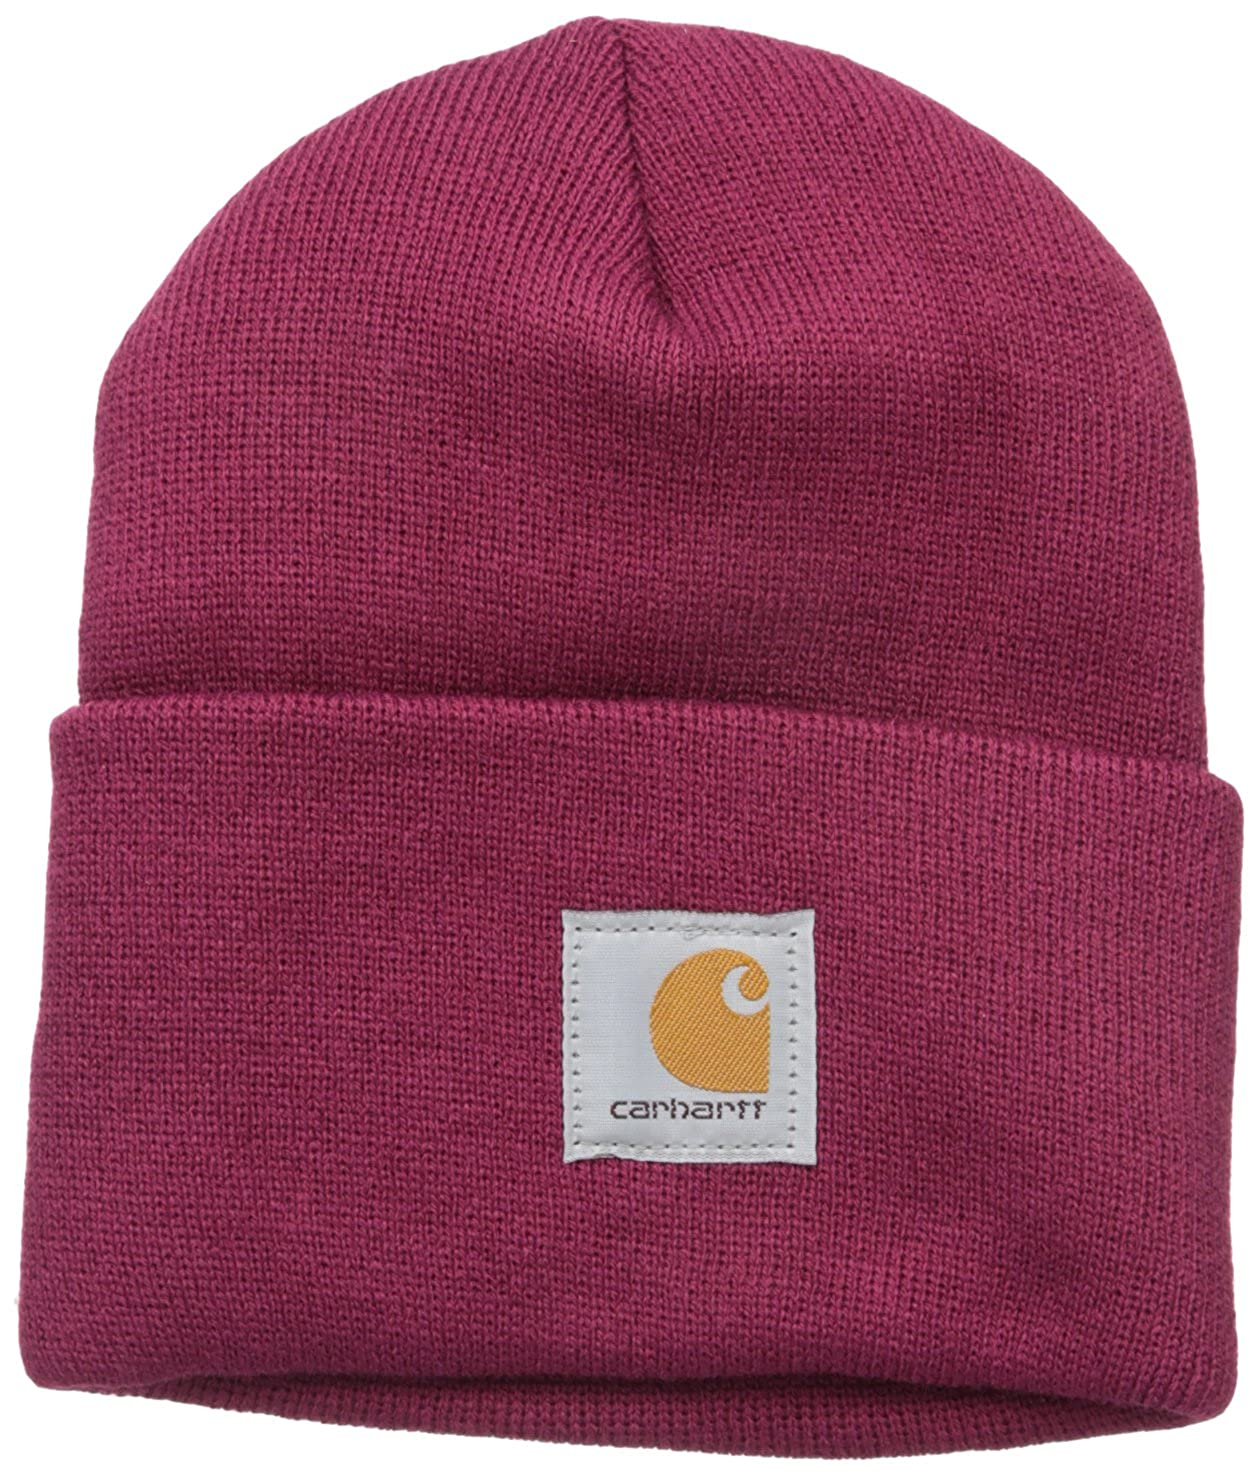 636b7be13d10bc Carhartt Women's Acrylic Watch Hat, Deep Wine, One Size: Amazon.ca:  Clothing & Accessories